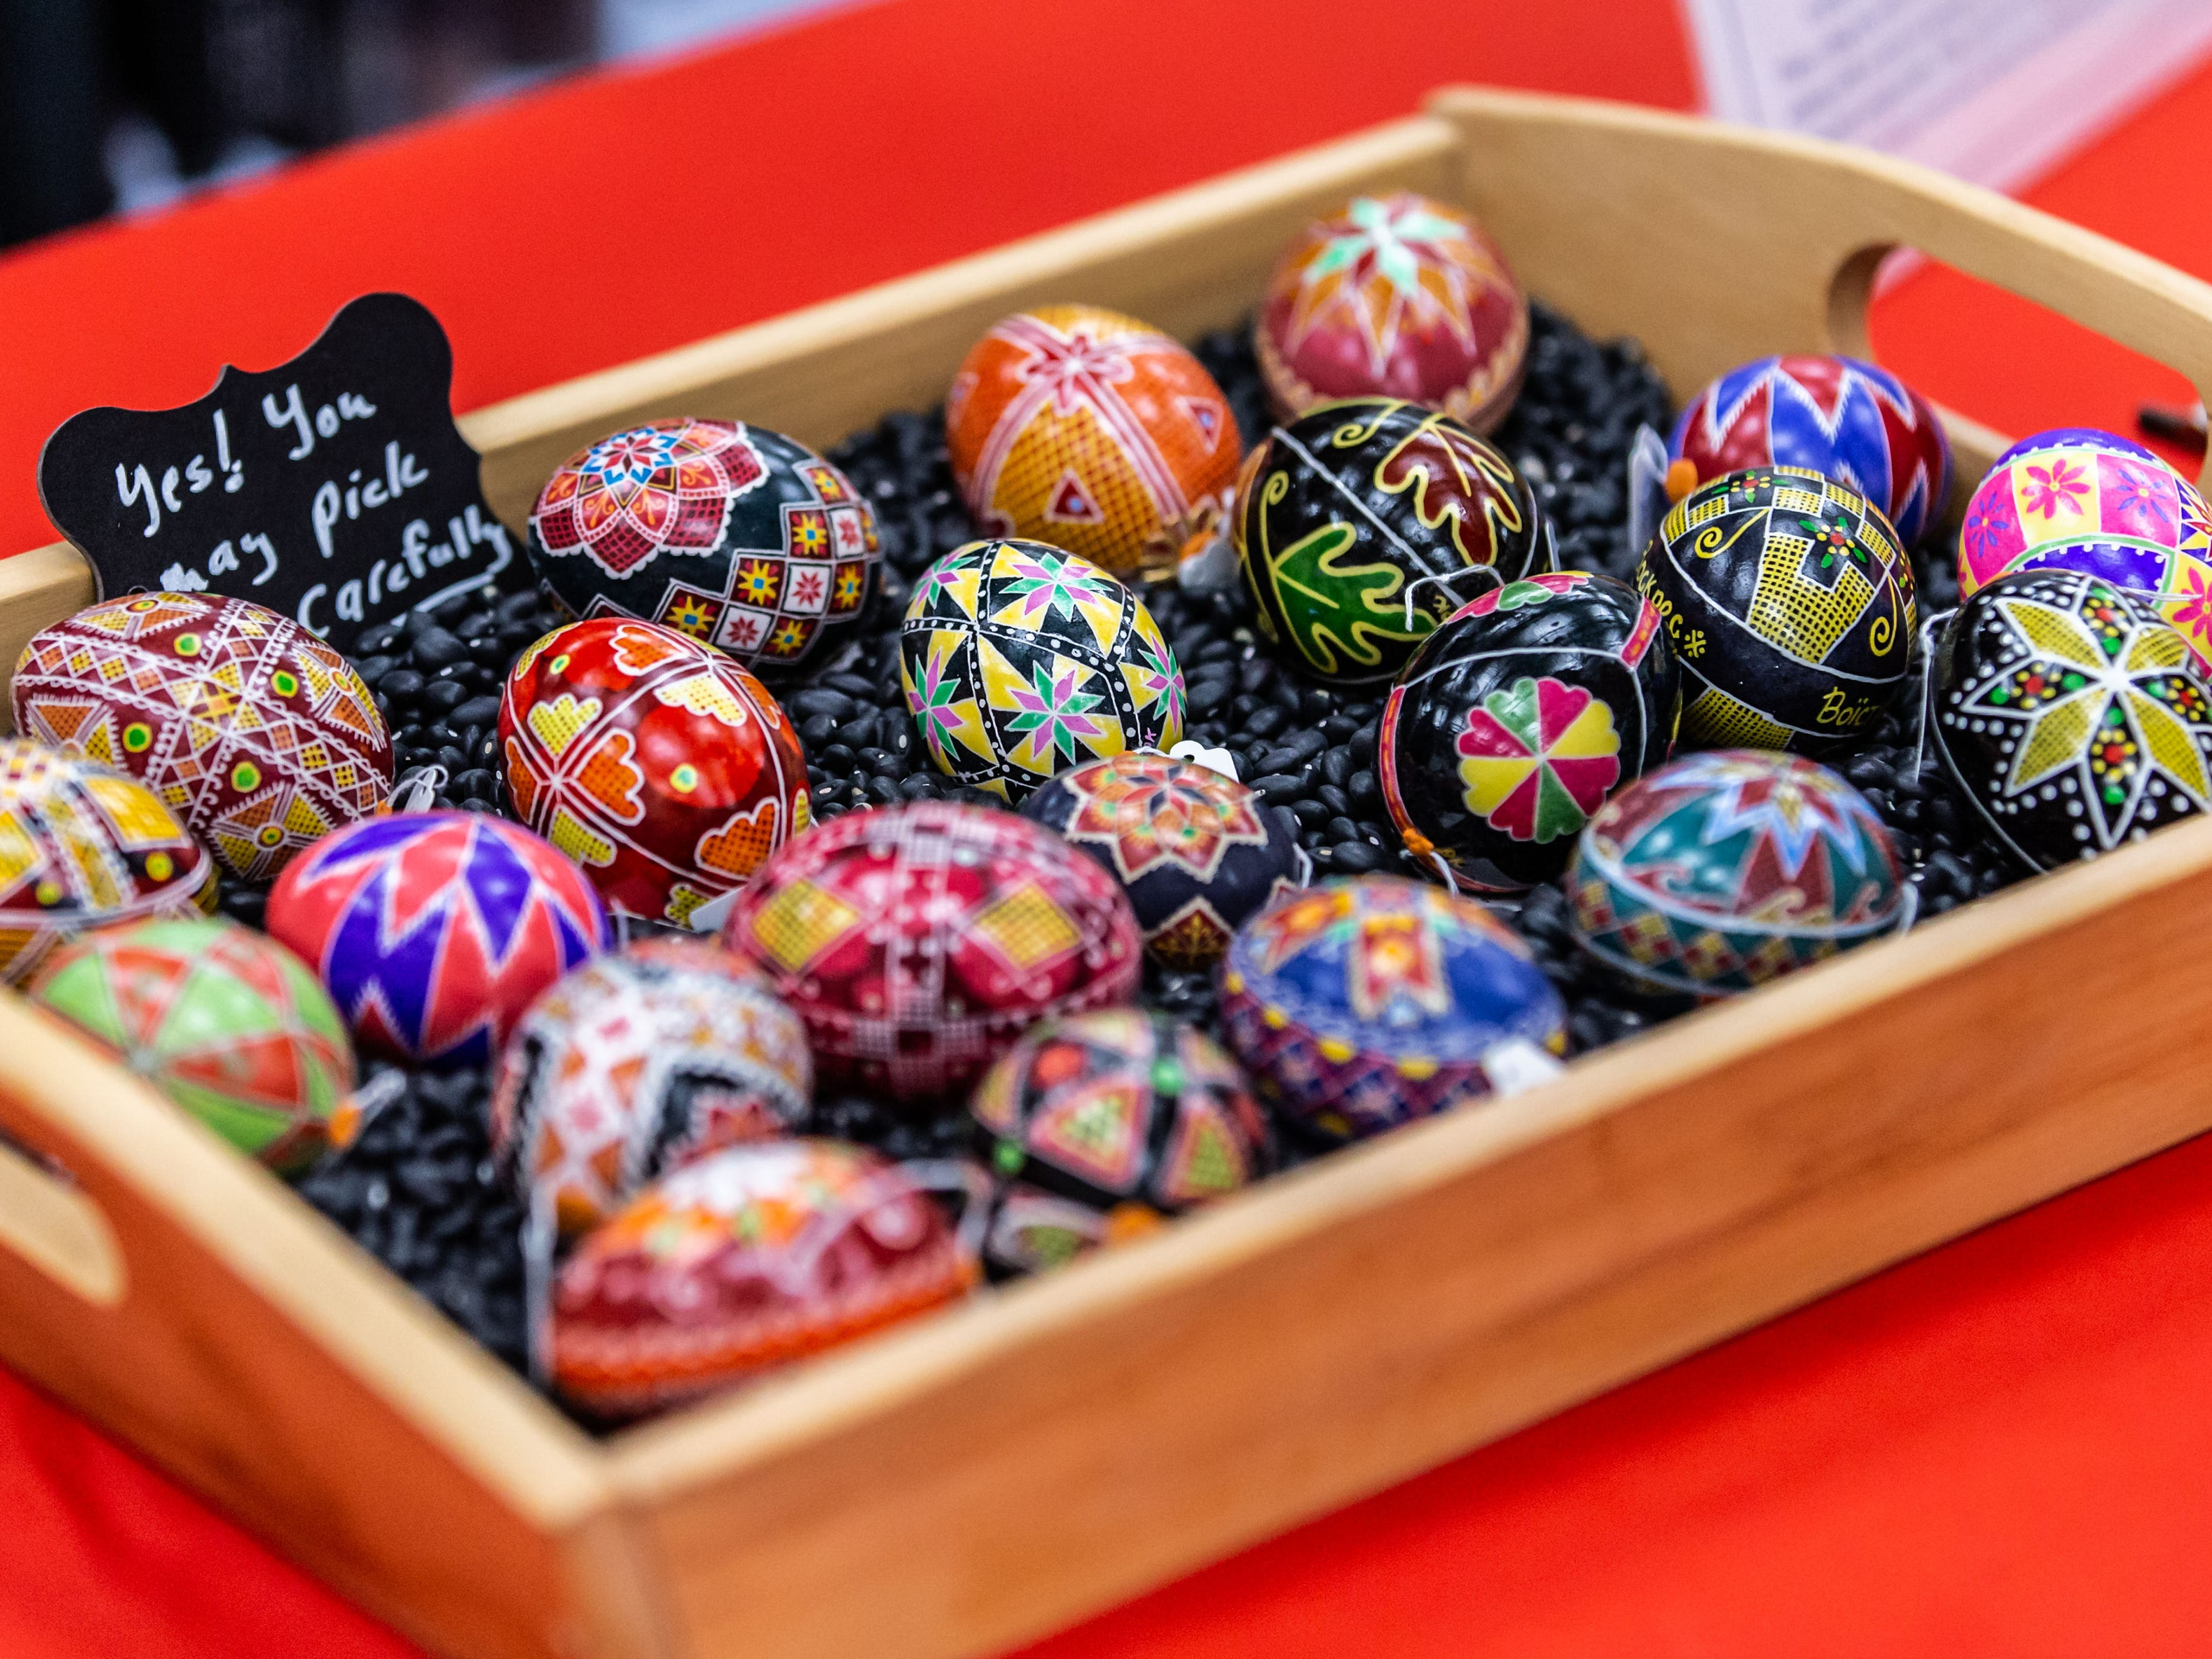 Diane Kitzerow of Cedarburg offers a variety of her Beautiful Eggs during the 7th annual Art in the Burg art fair at Cedarburg High School (CHS) on Saturday, March 9, 2019. The event, sponsored by the CHS Fine Arts Boosters and Art Department, features 75 artists from the midwest exhibiting and selling original work in many artistic disciplines.